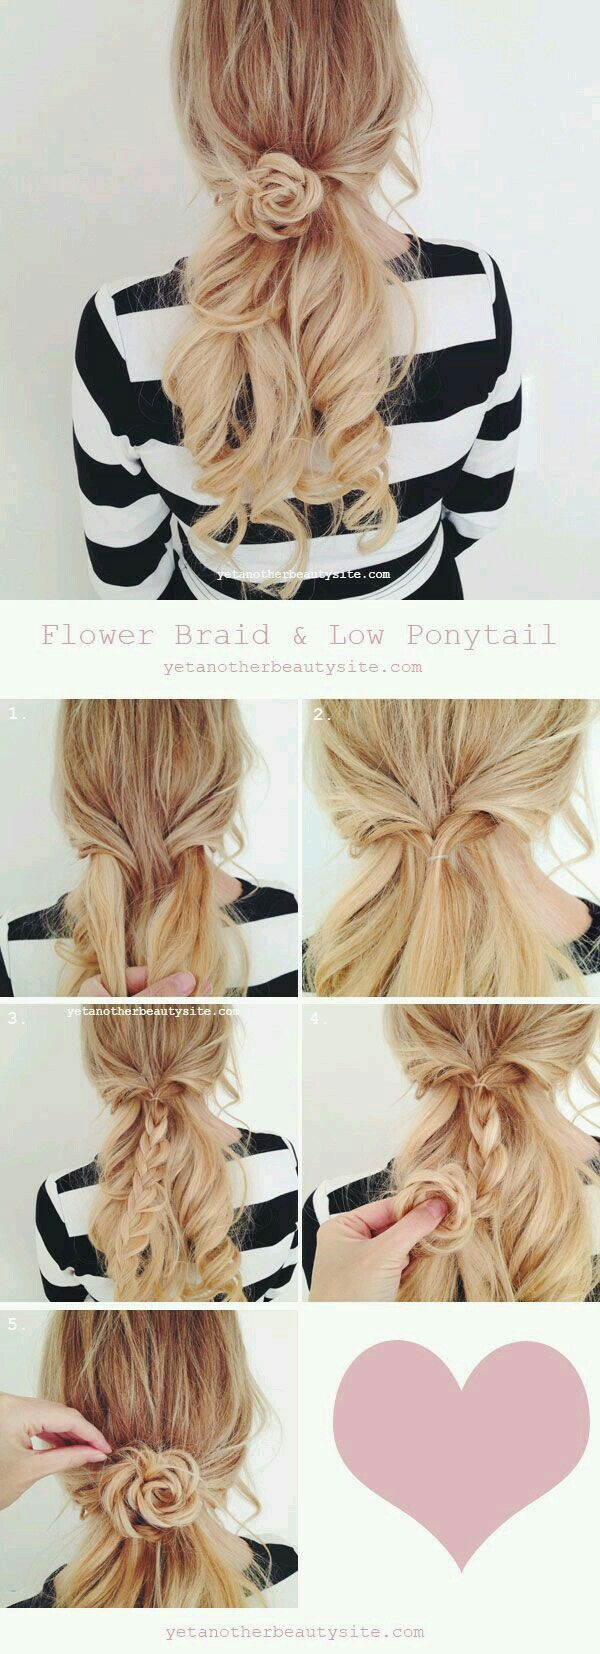 Pin by taysha rene on dollhairs pinterest hair style awesome